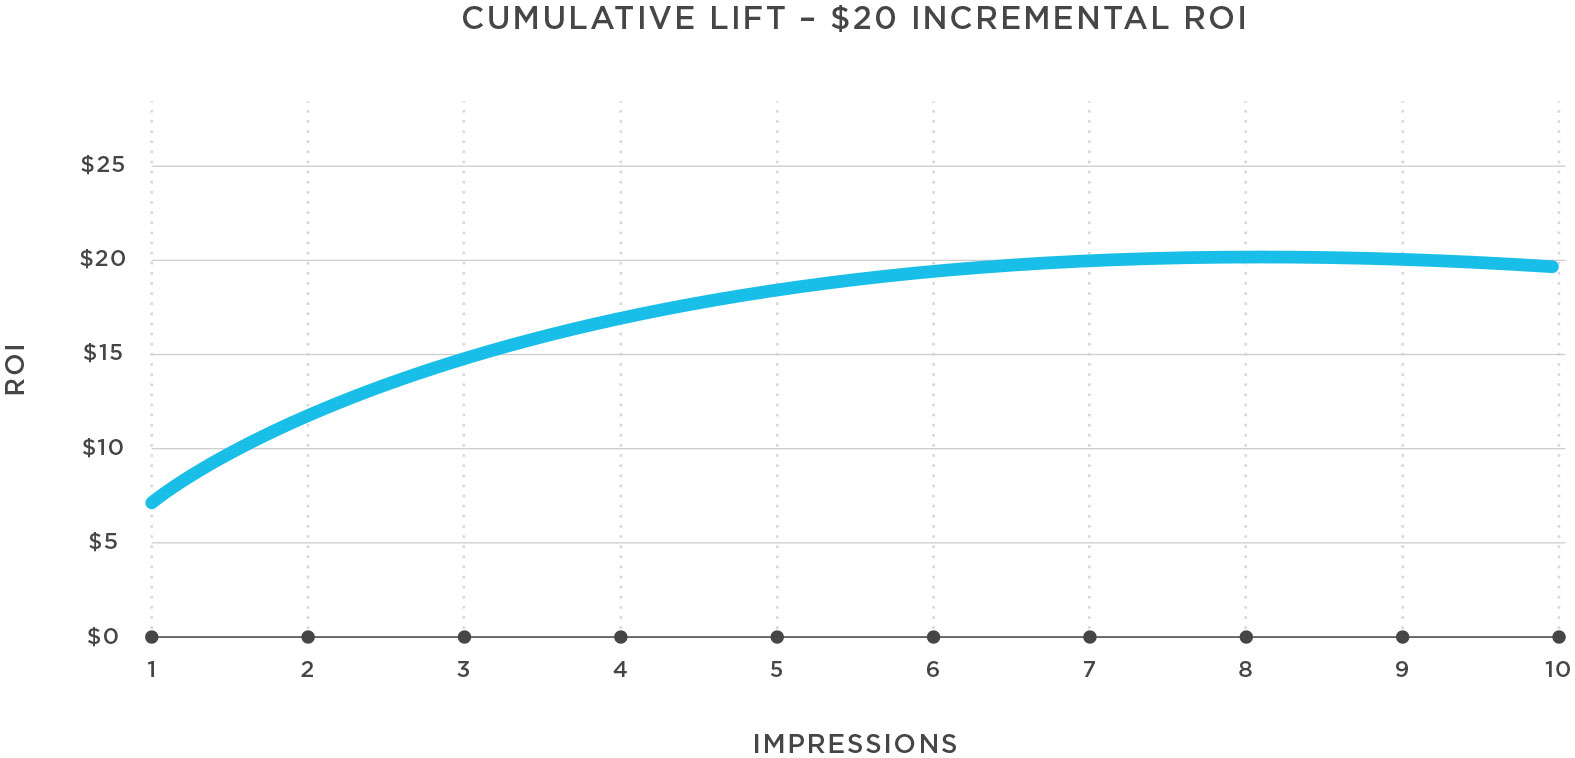 Cumulative Lift $20 Incremental ROI